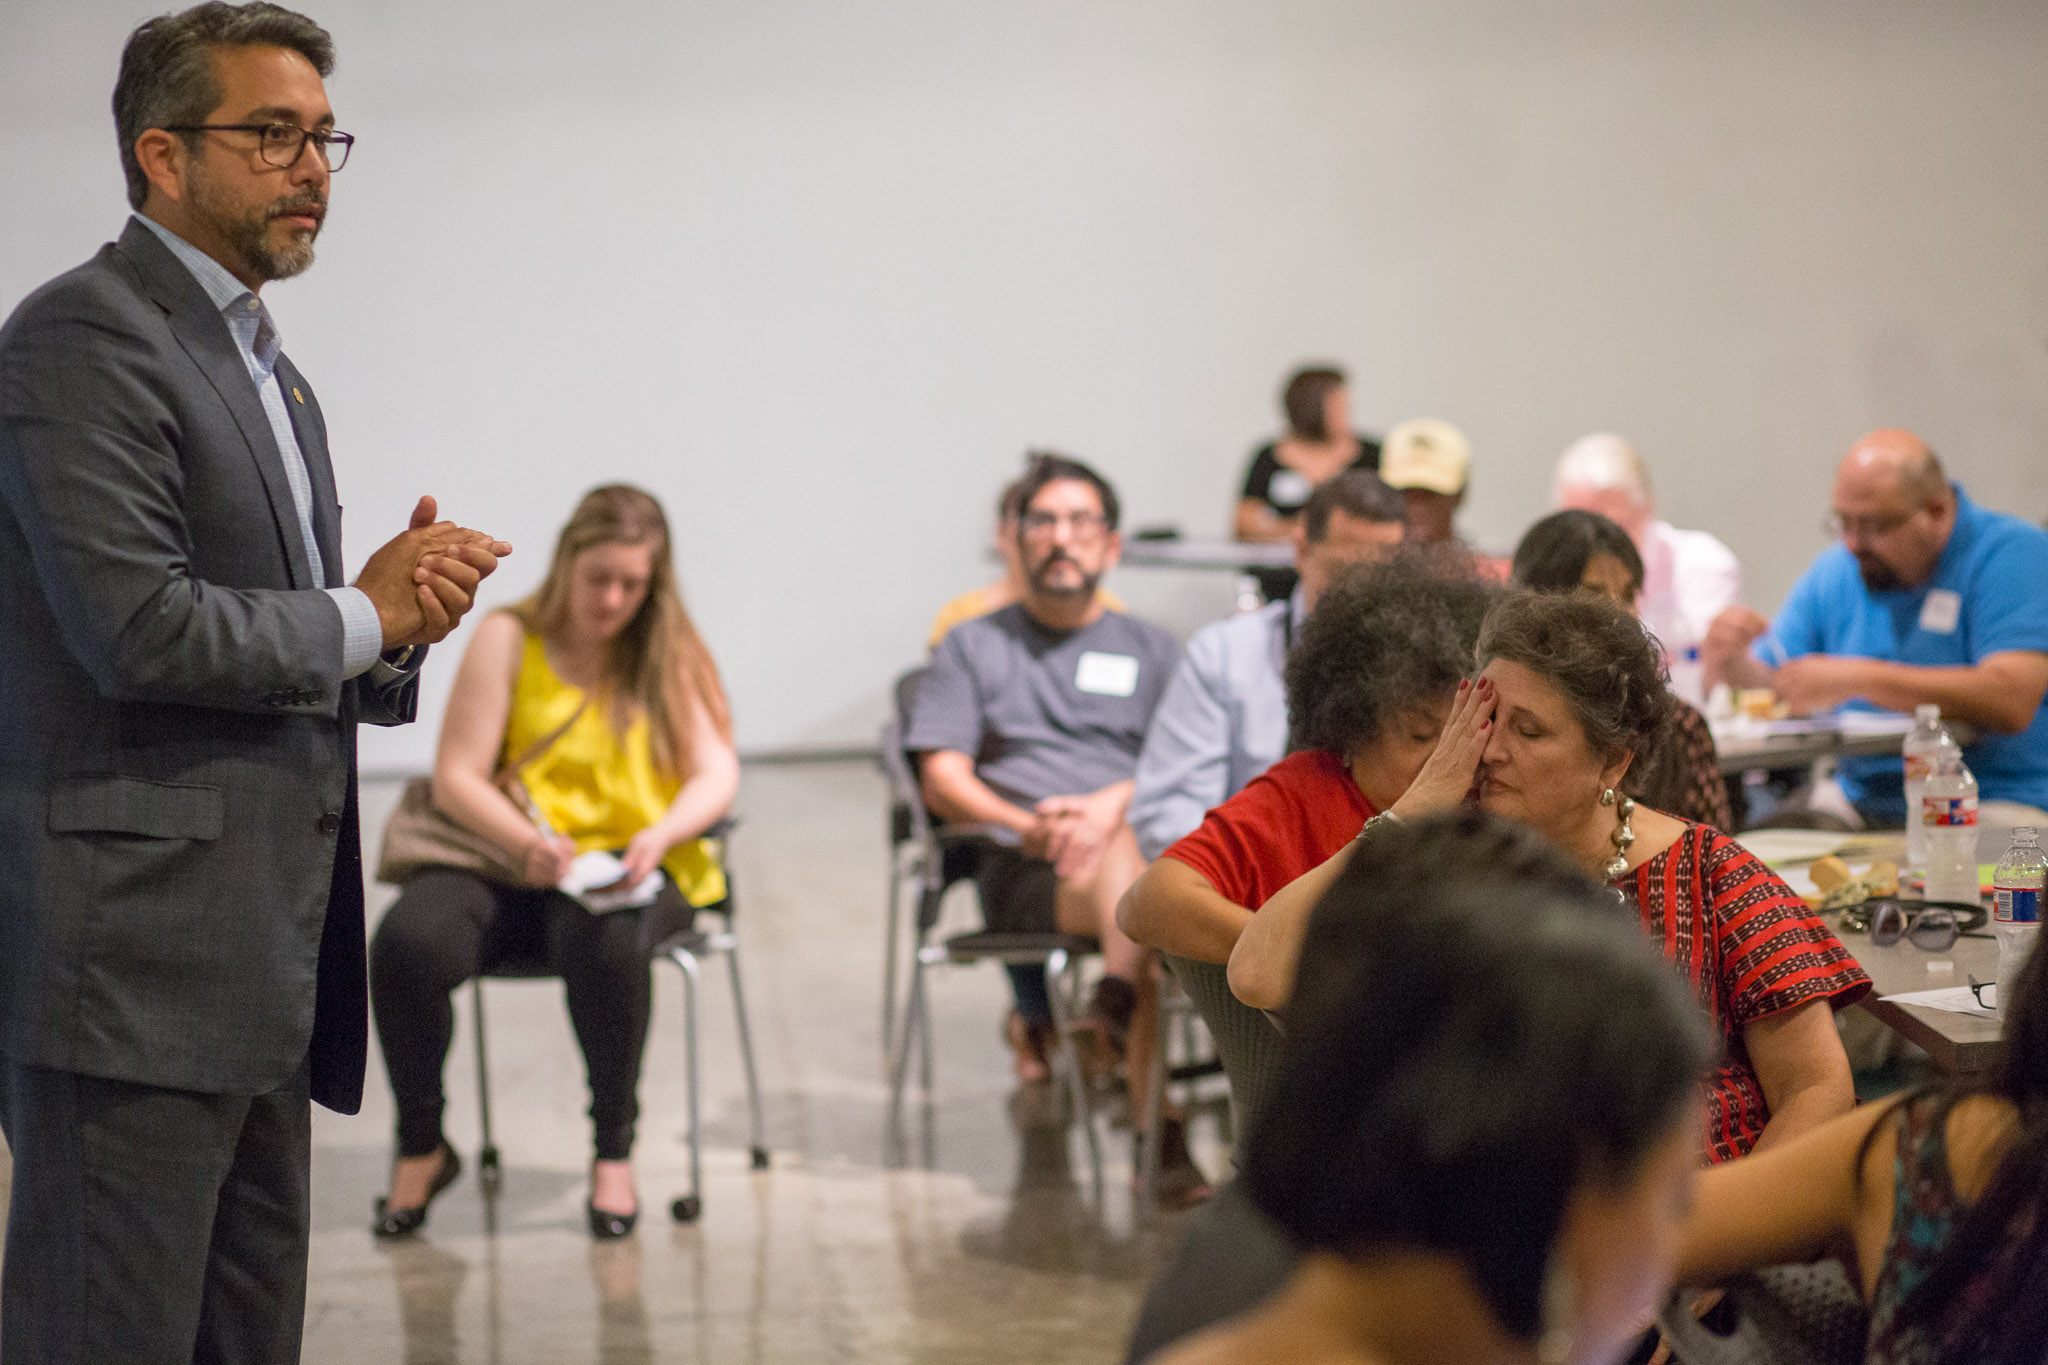 Councilman Roberto Treviño (D1) addresses audience members and discusses the importance of Centro De Artes. Photo by Scott Ball.